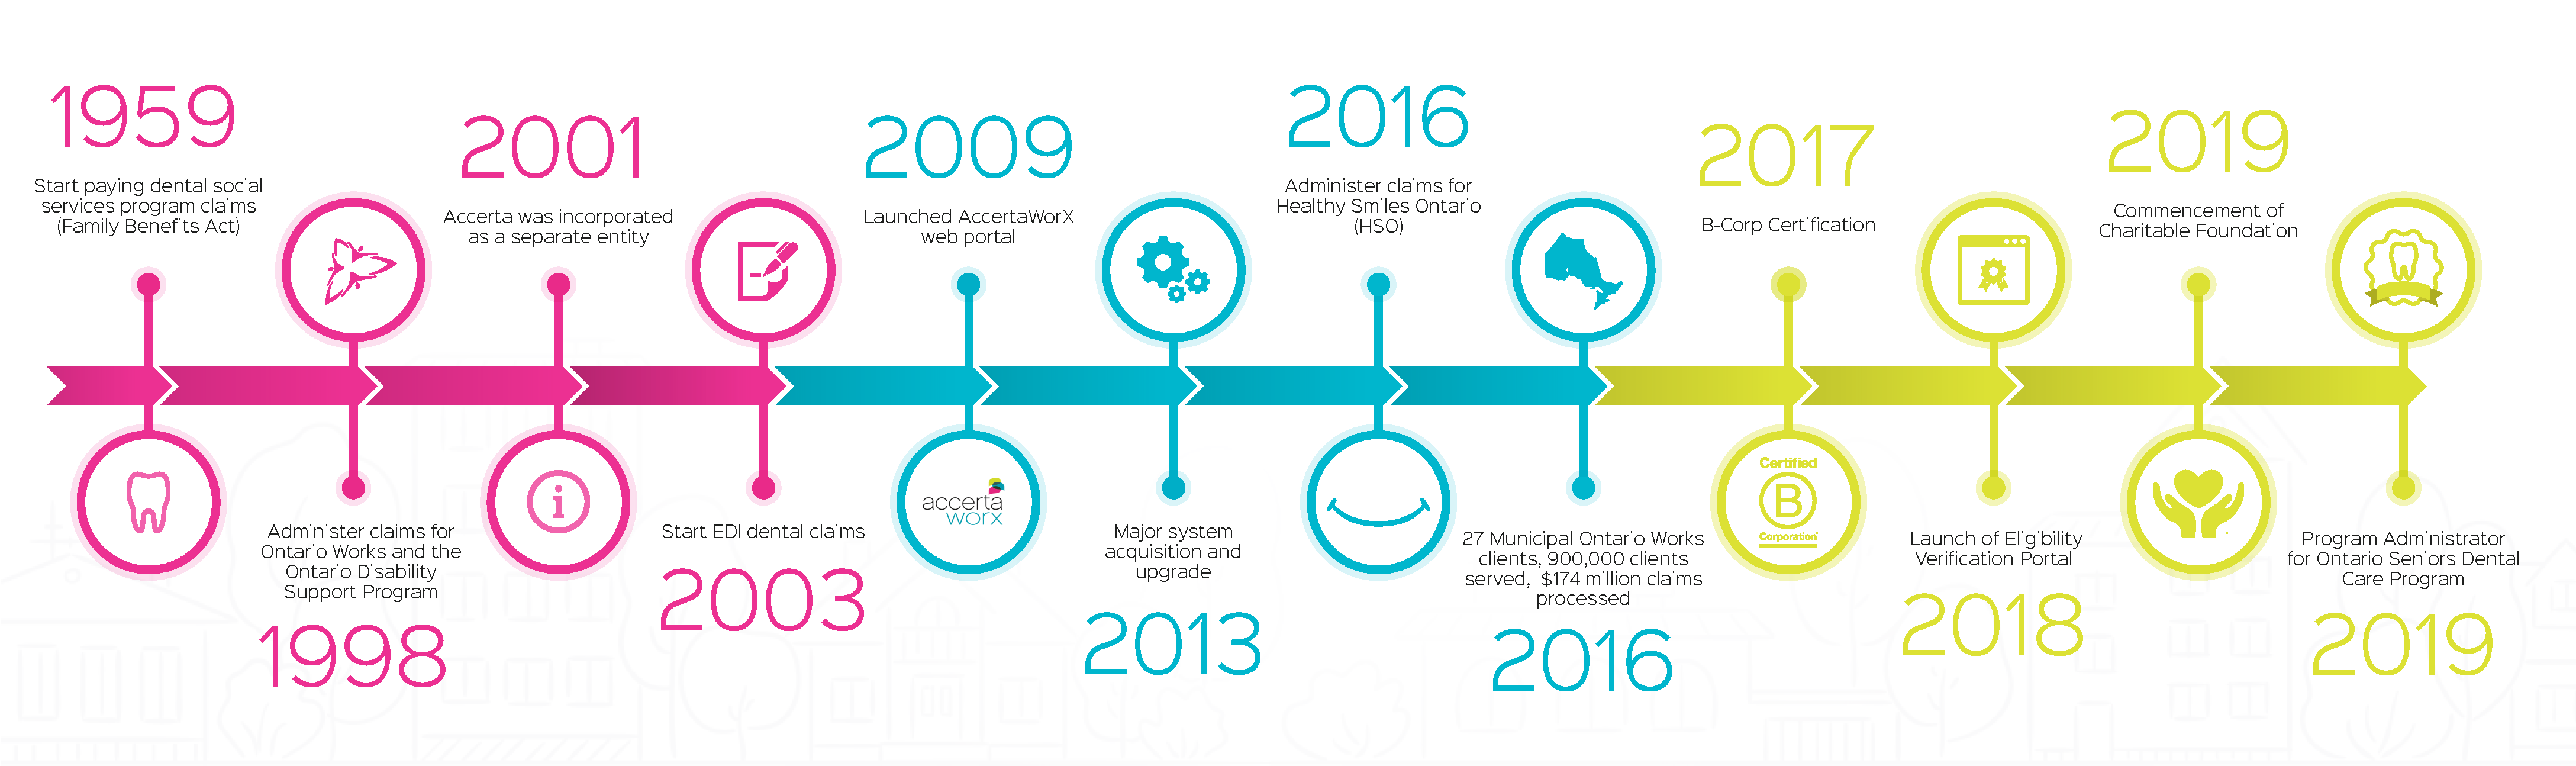 Accerta timeline with milestones